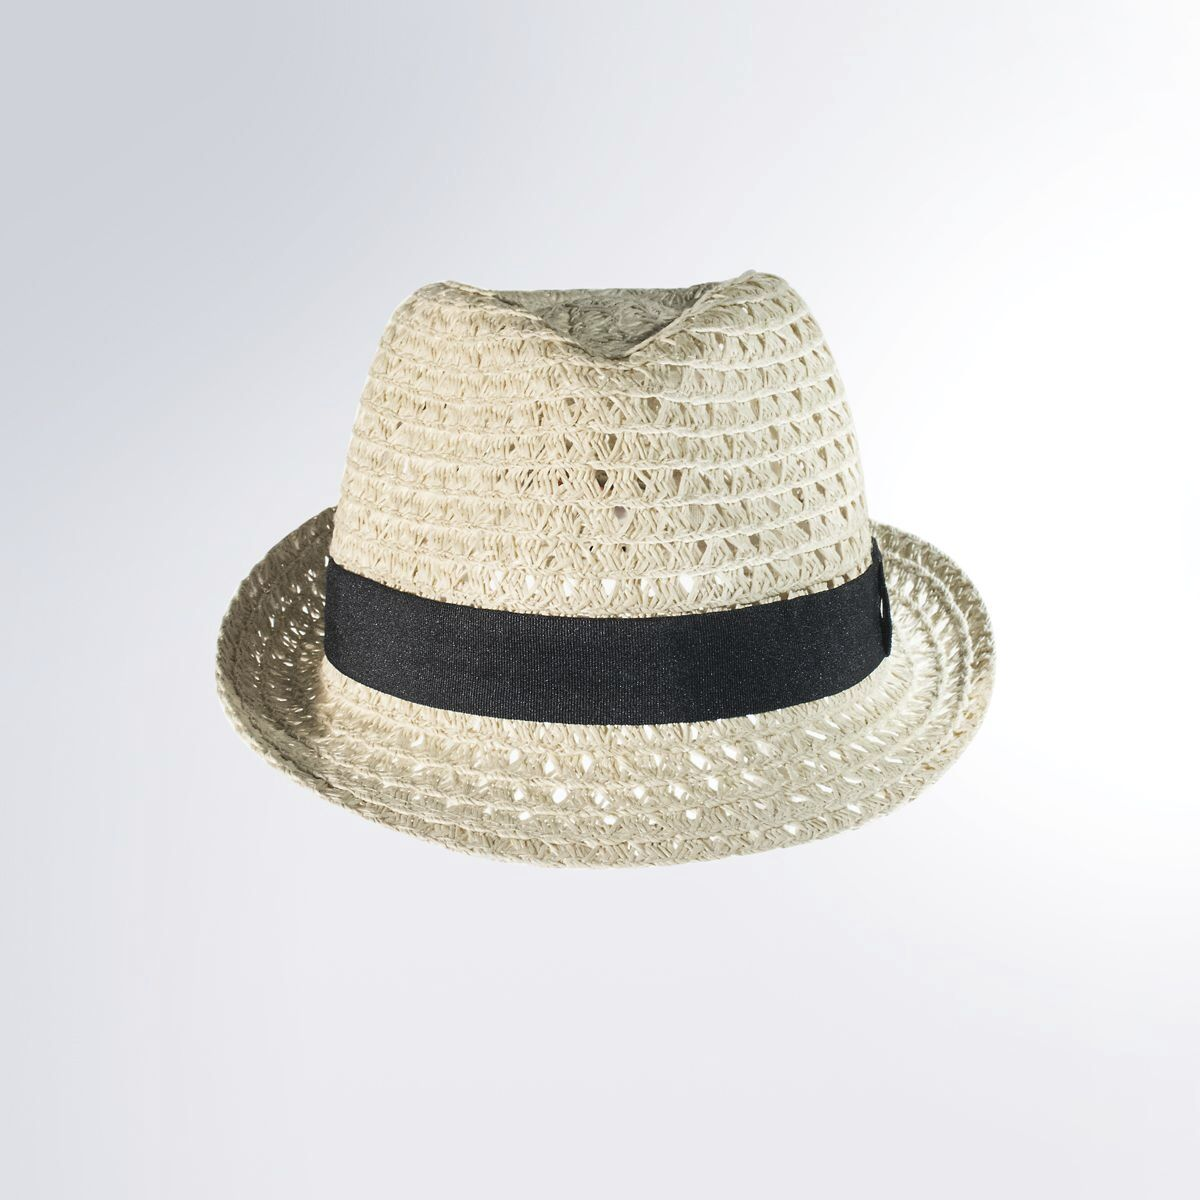 DUKESI STRAW HAT